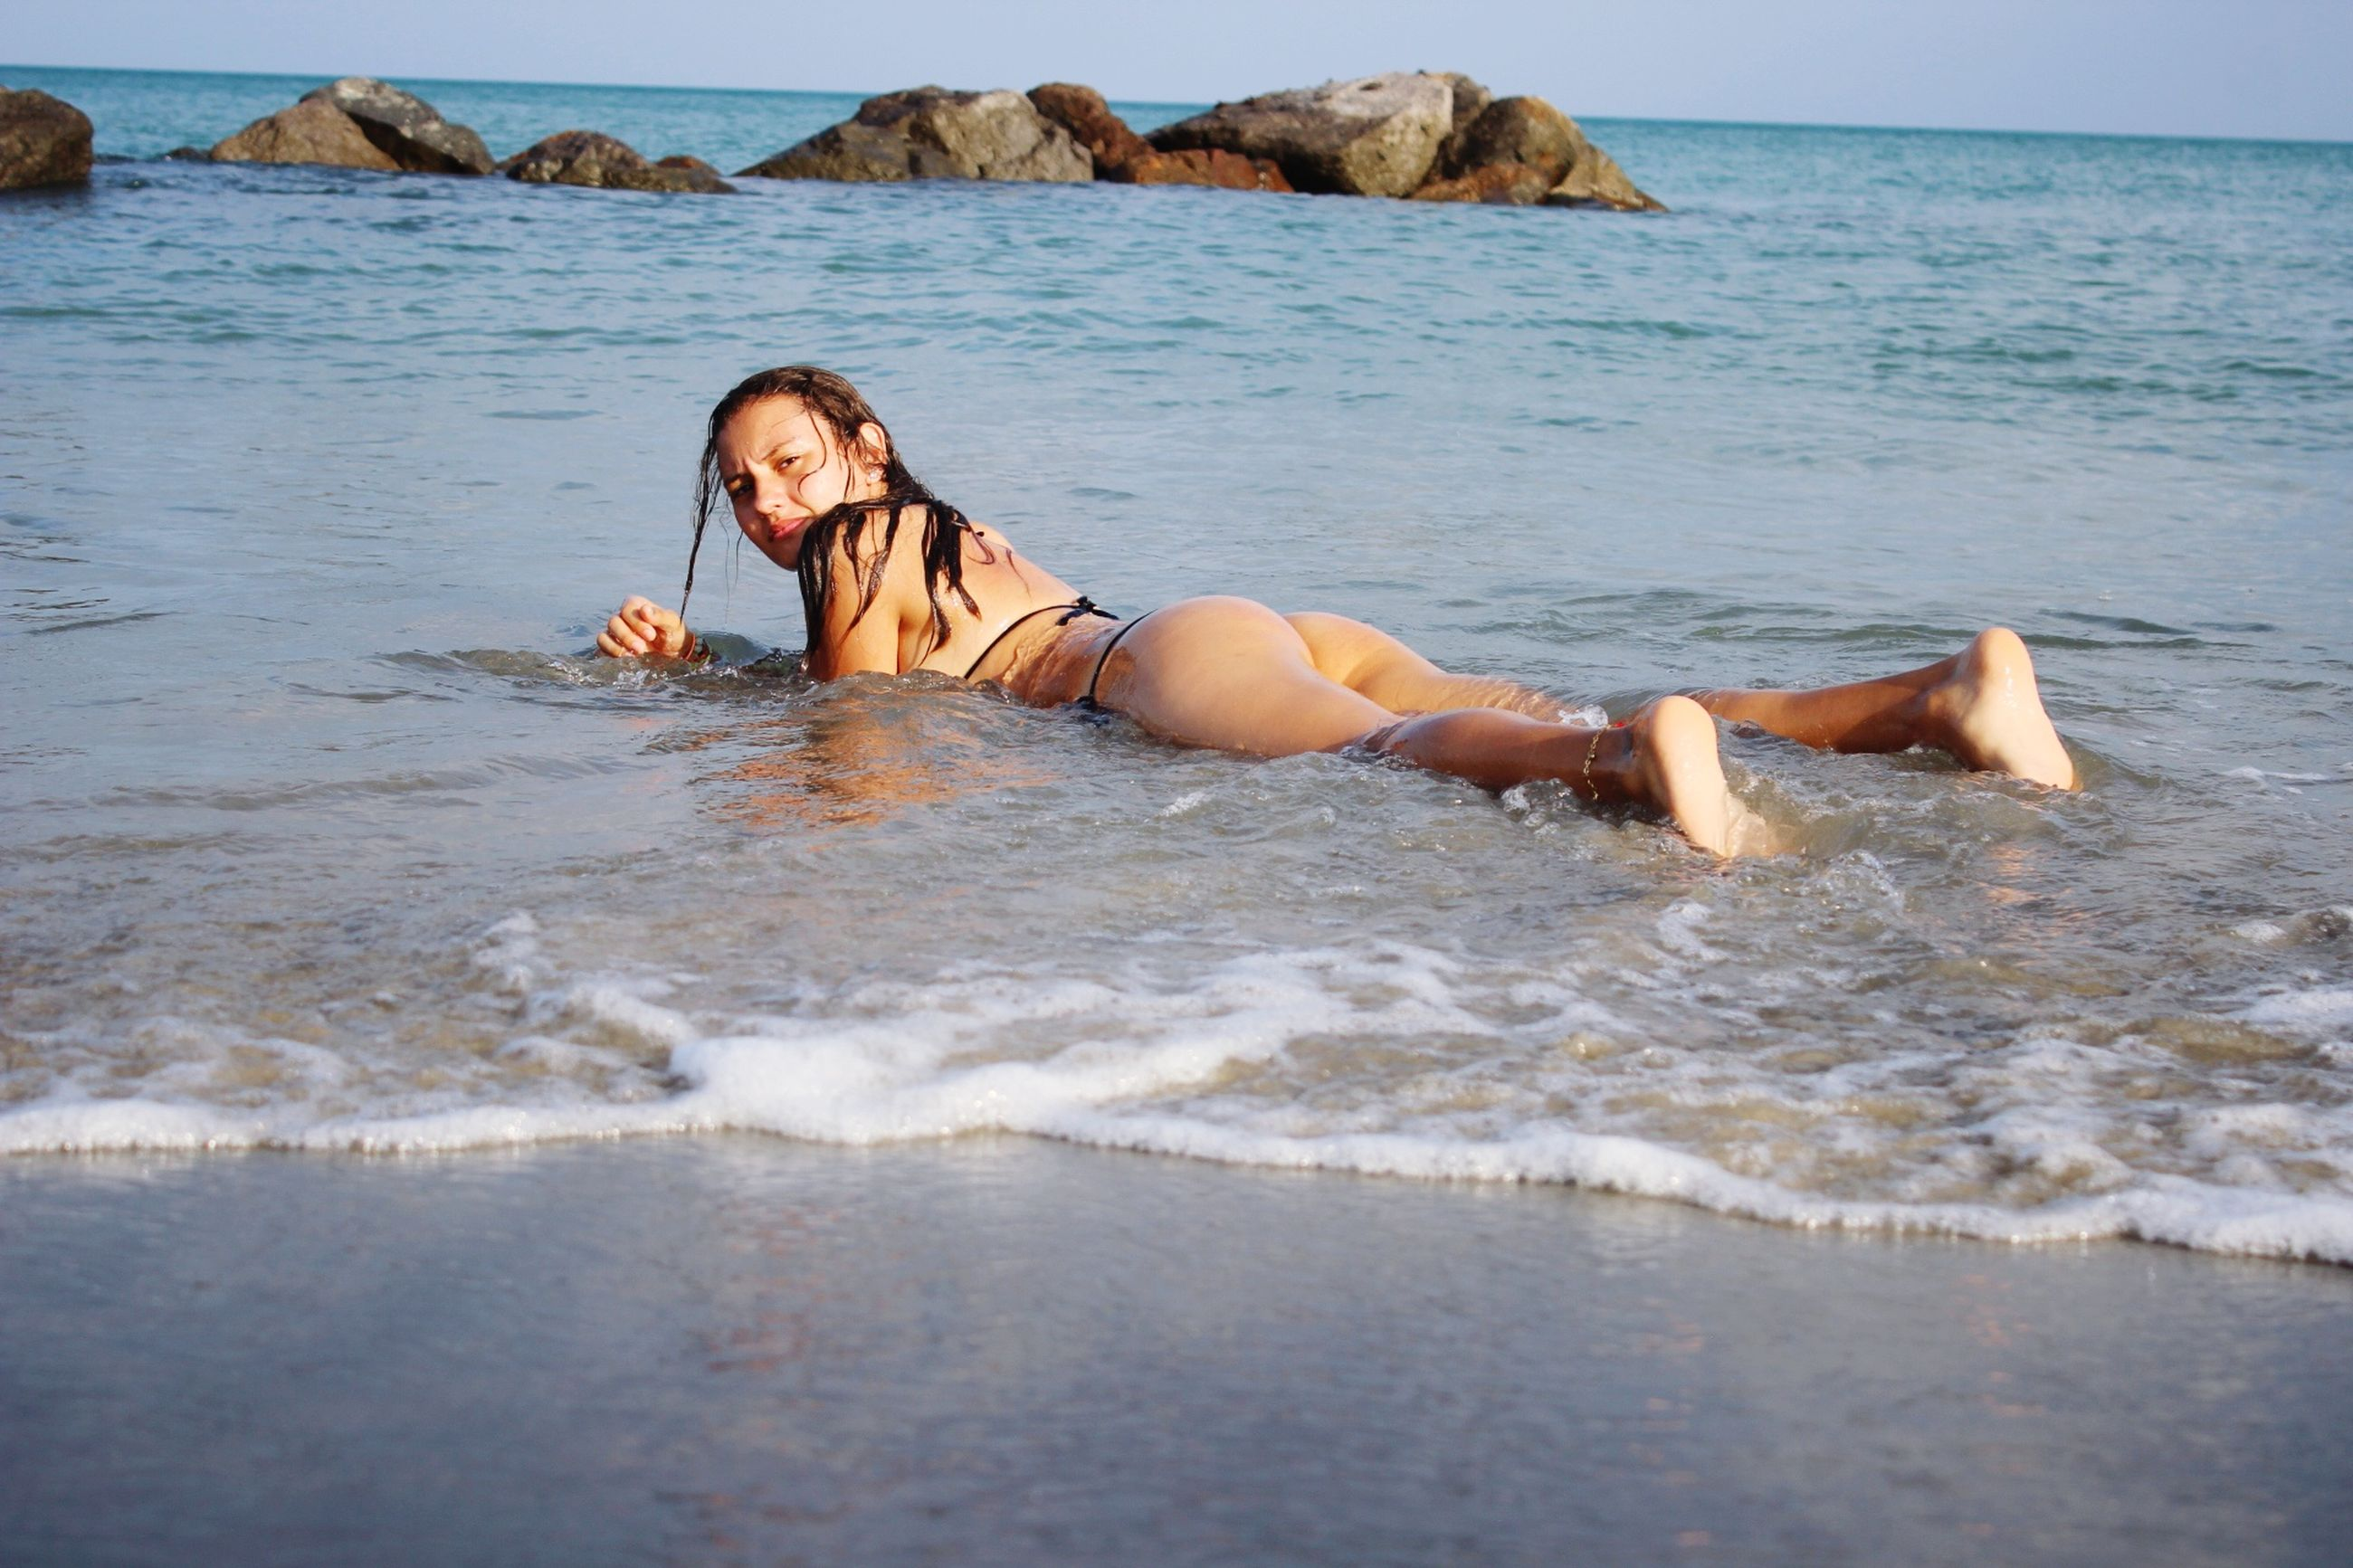 water, sea, beach, lifestyles, leisure activity, vacations, shore, person, young adult, full length, sand, relaxation, horizon over water, young women, wave, summer, shirtless, enjoyment